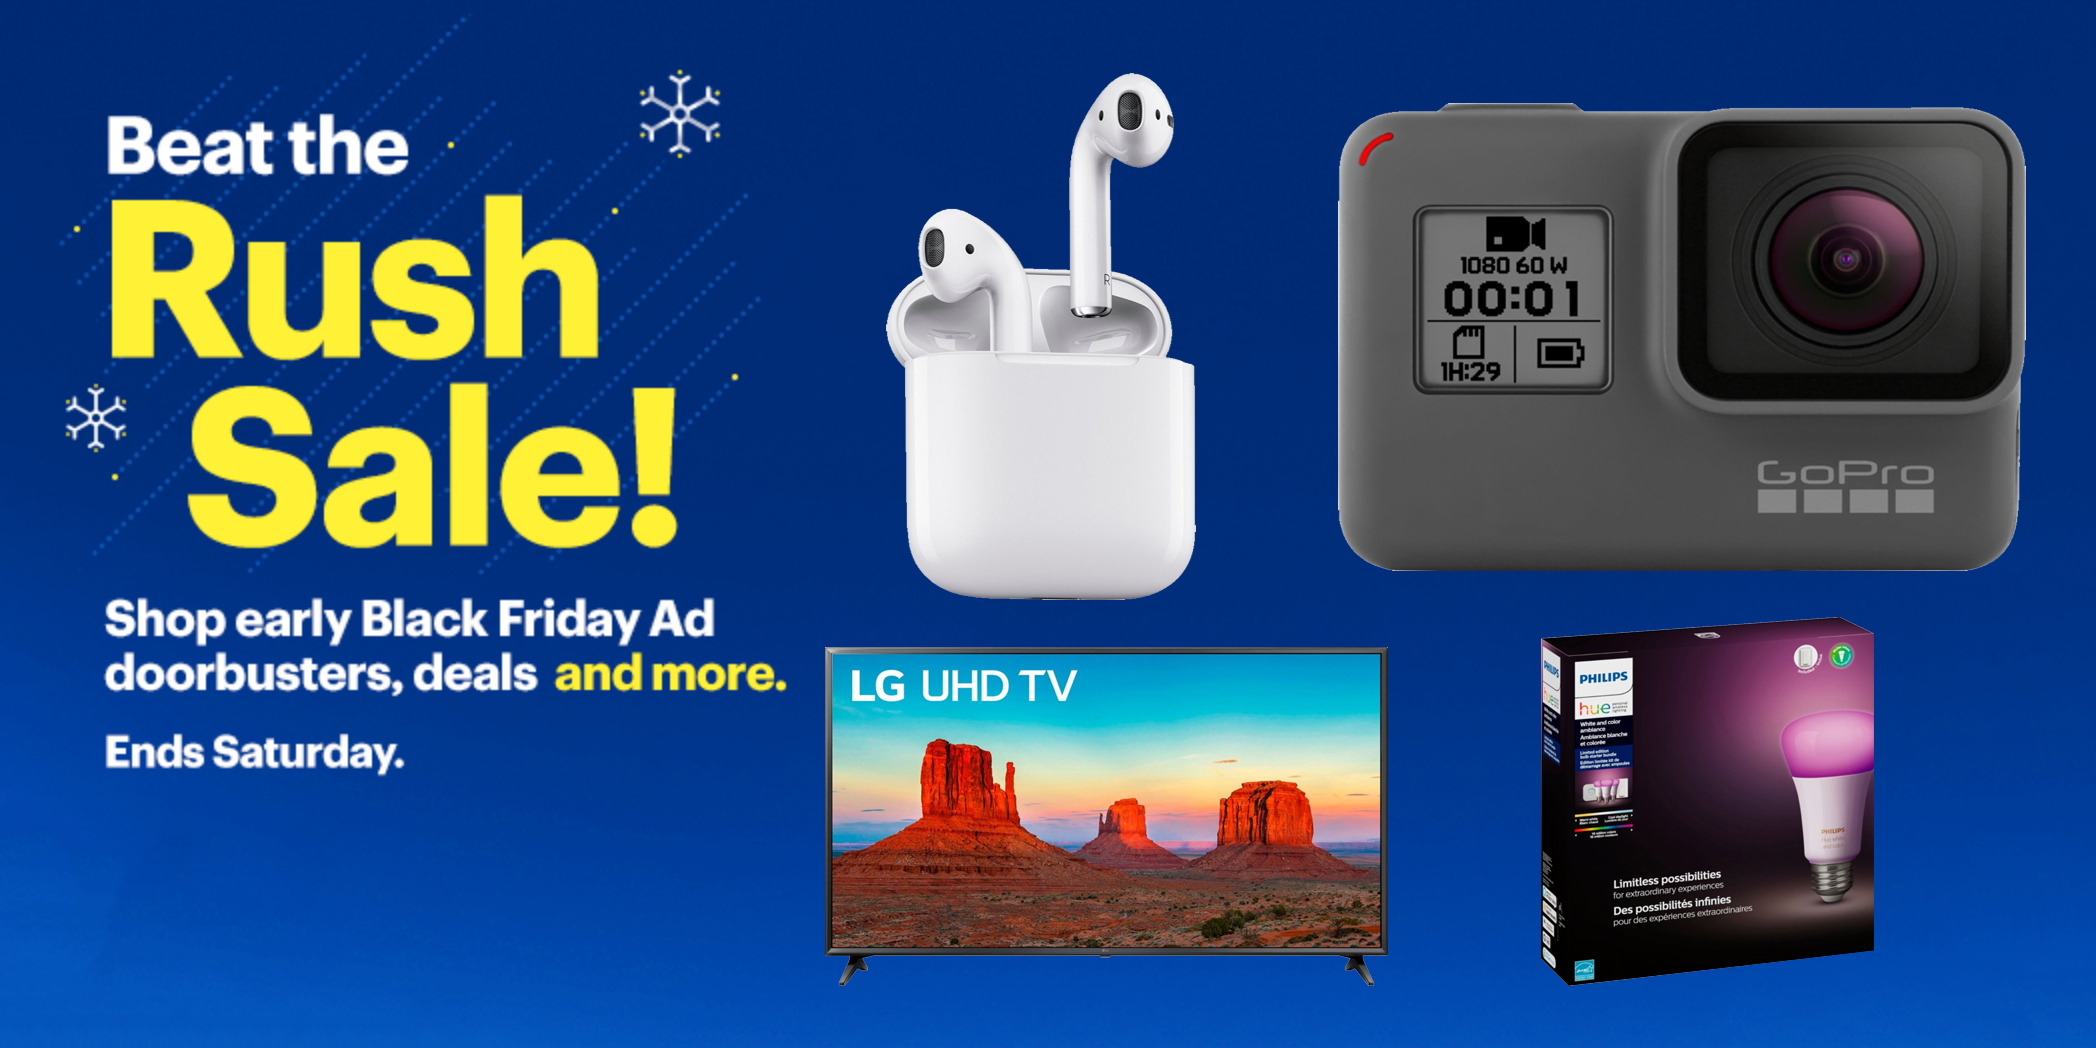 Beat the Rush Sale at Best Buy includes $200 off iPhone, AirPods, Philips Hue, more